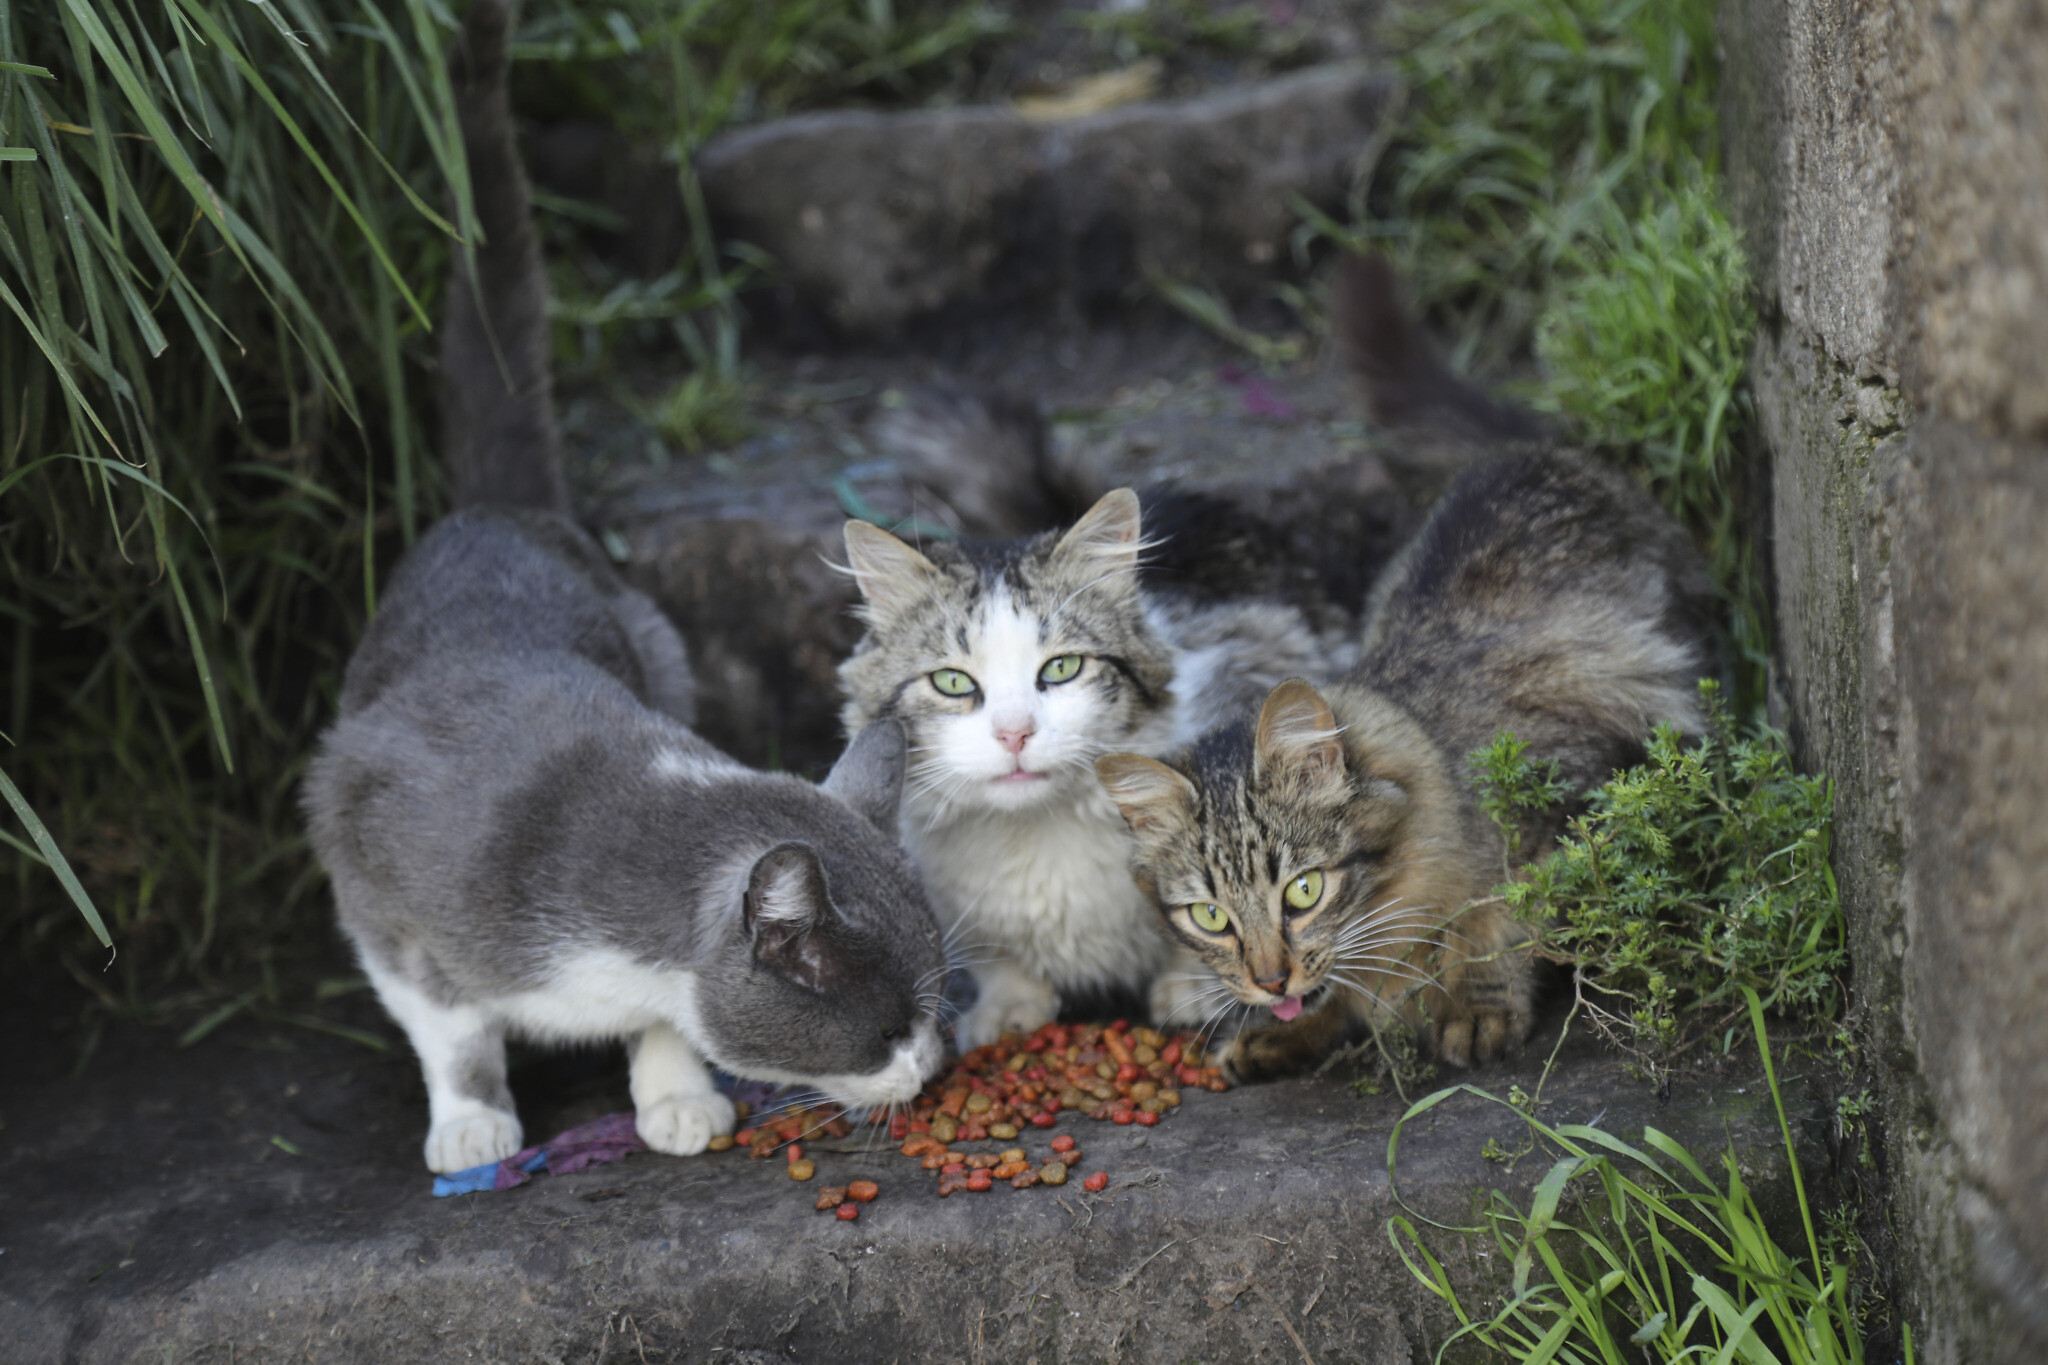 Two pet cats test positive for coronavirus in US